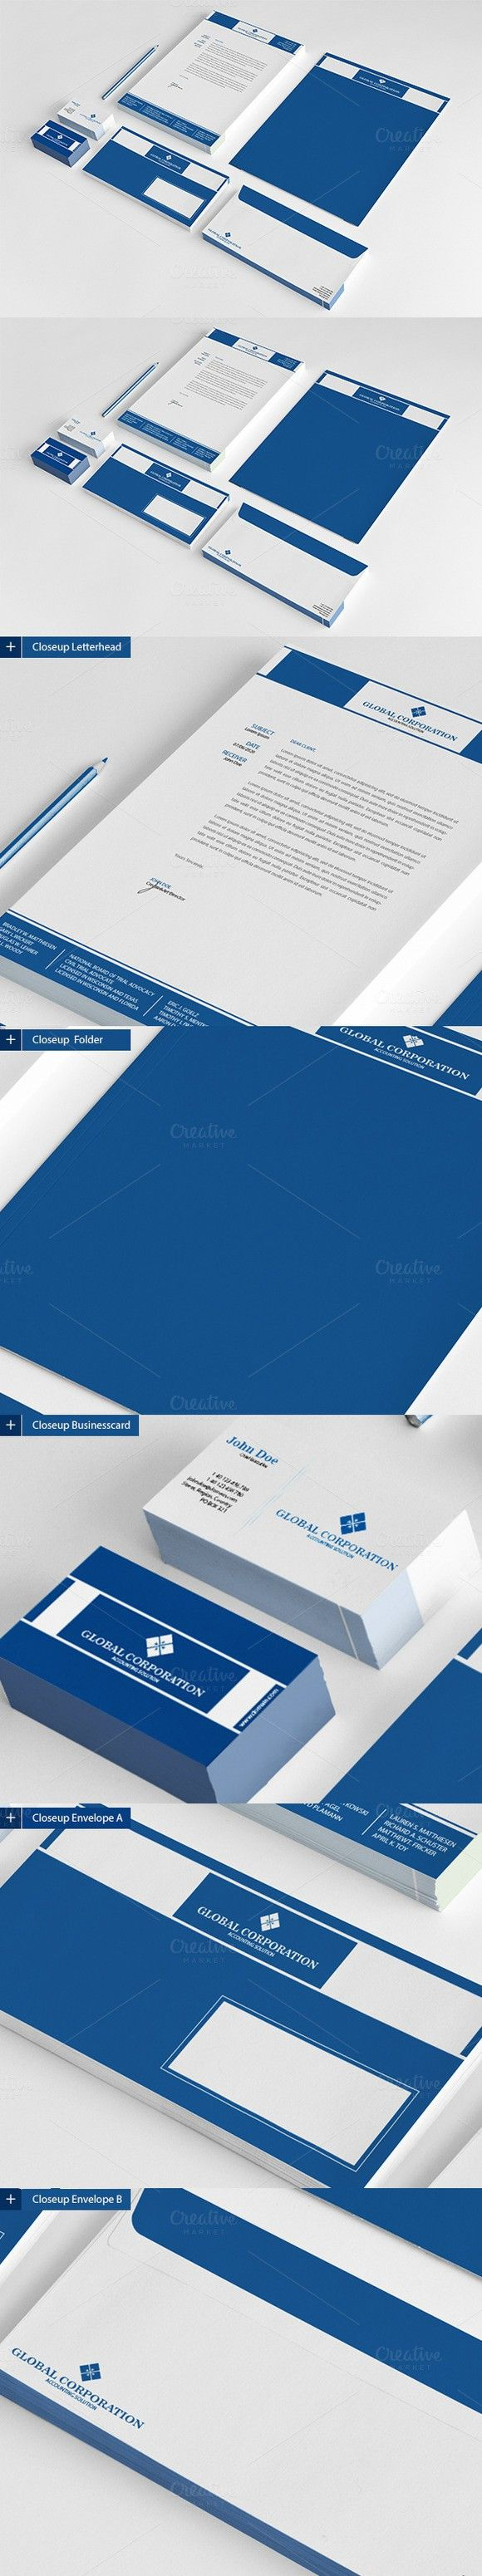 Global Corporation Stationary. Stationery Templates